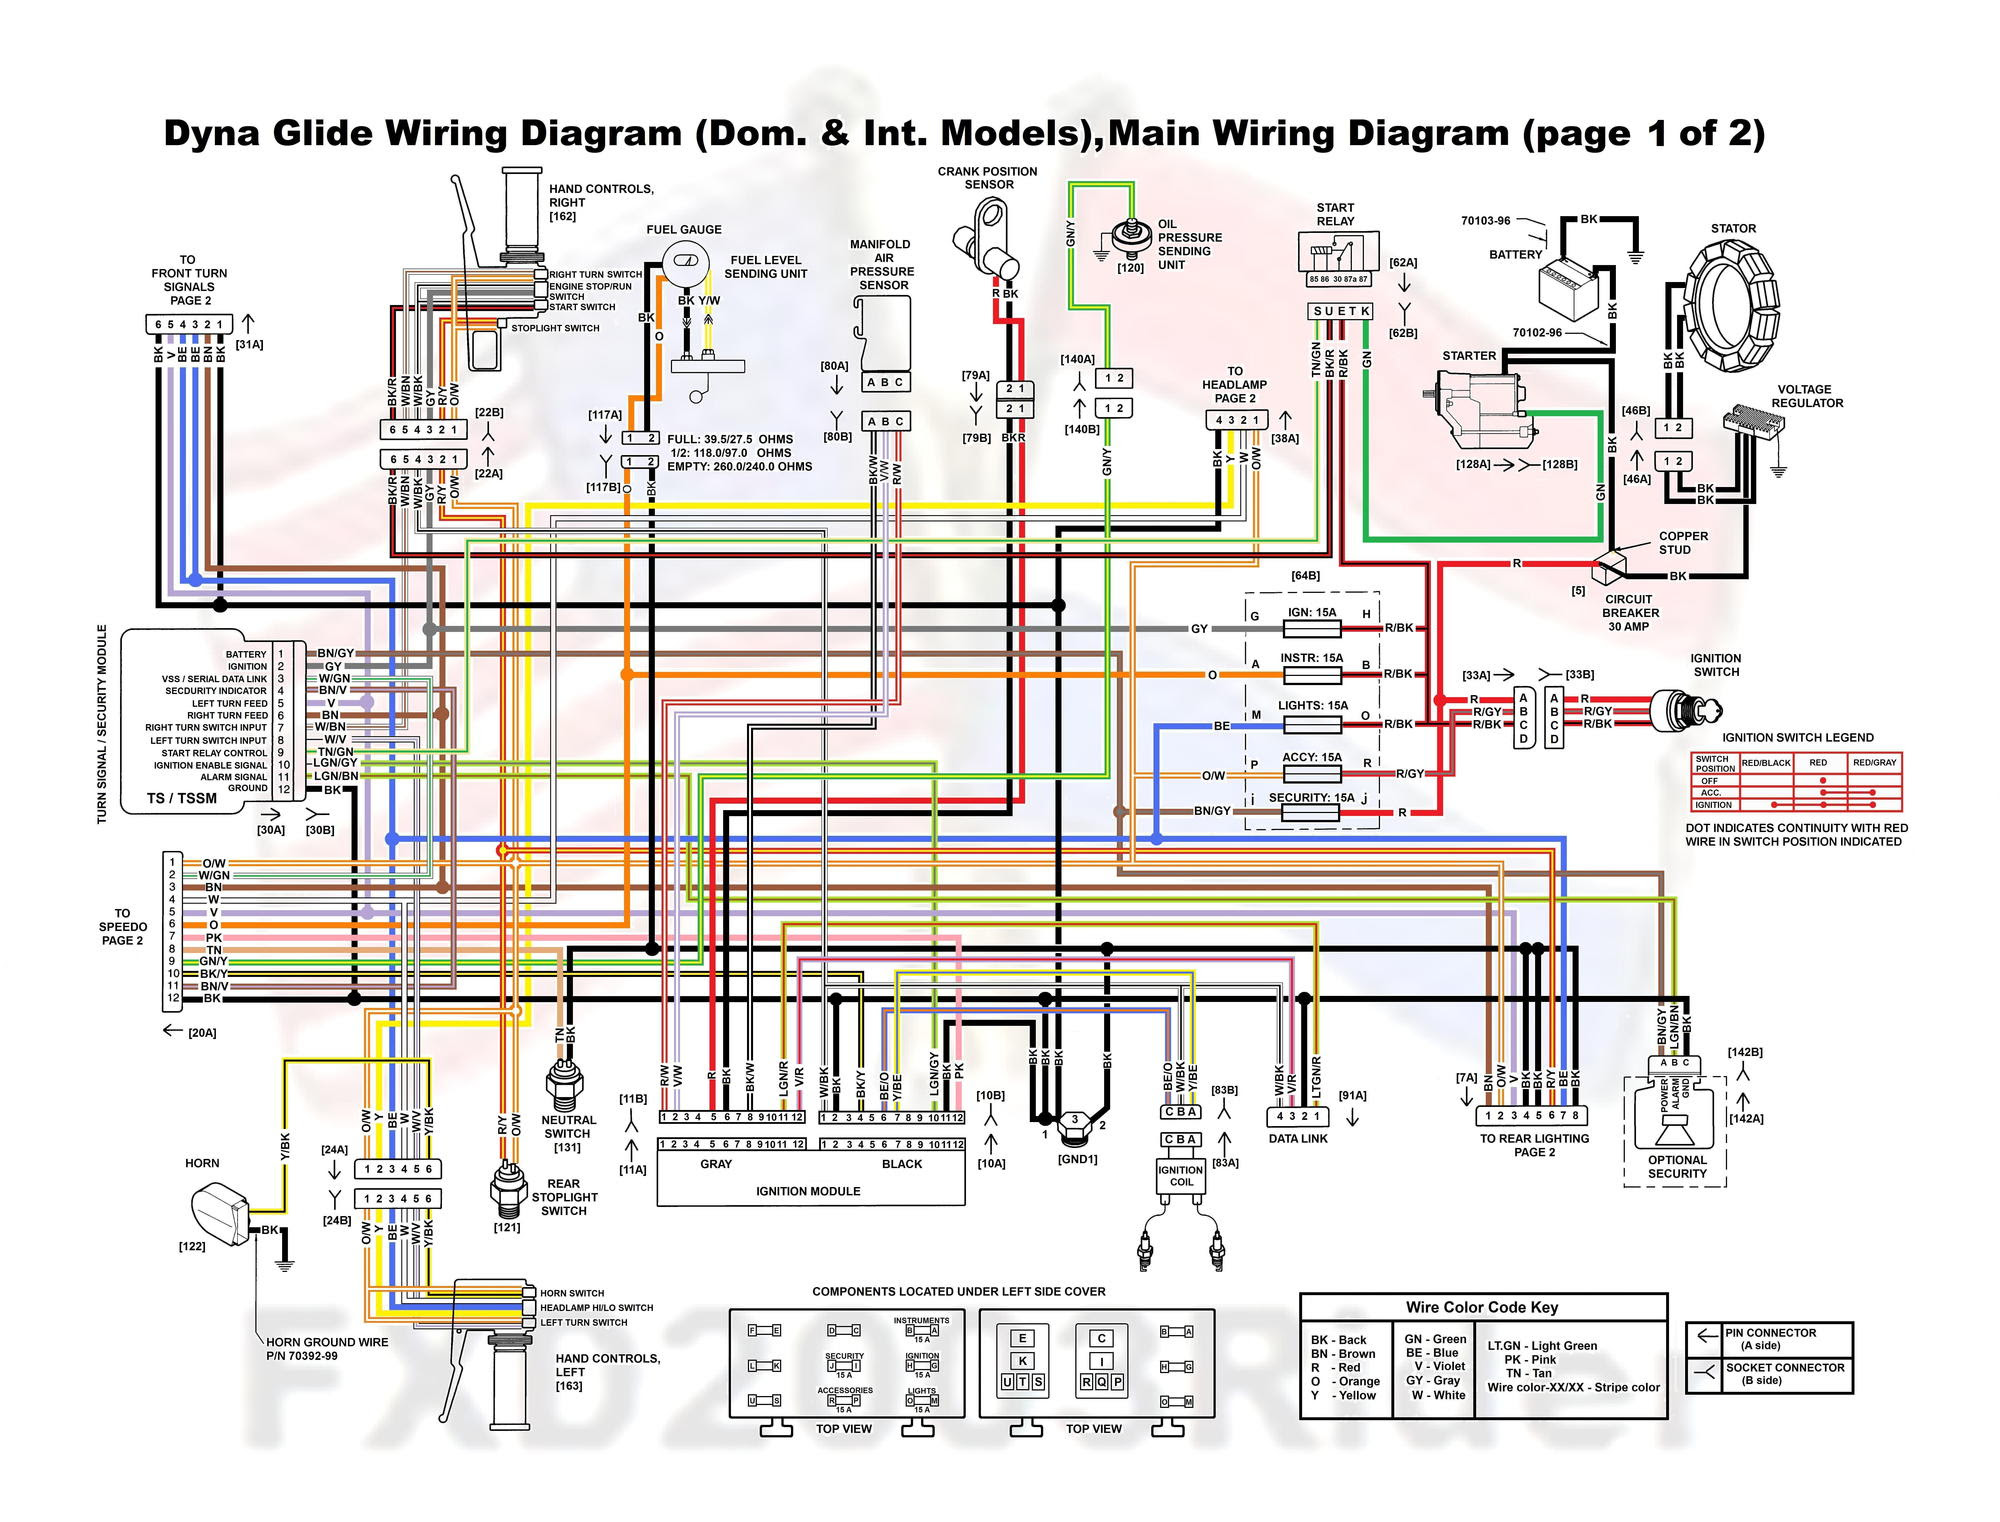 Diagram Peugeot Boxer 2003 Wiring Diagram Full Version Hd Quality Wiring Diagram Diagramspie Fermobiologico It